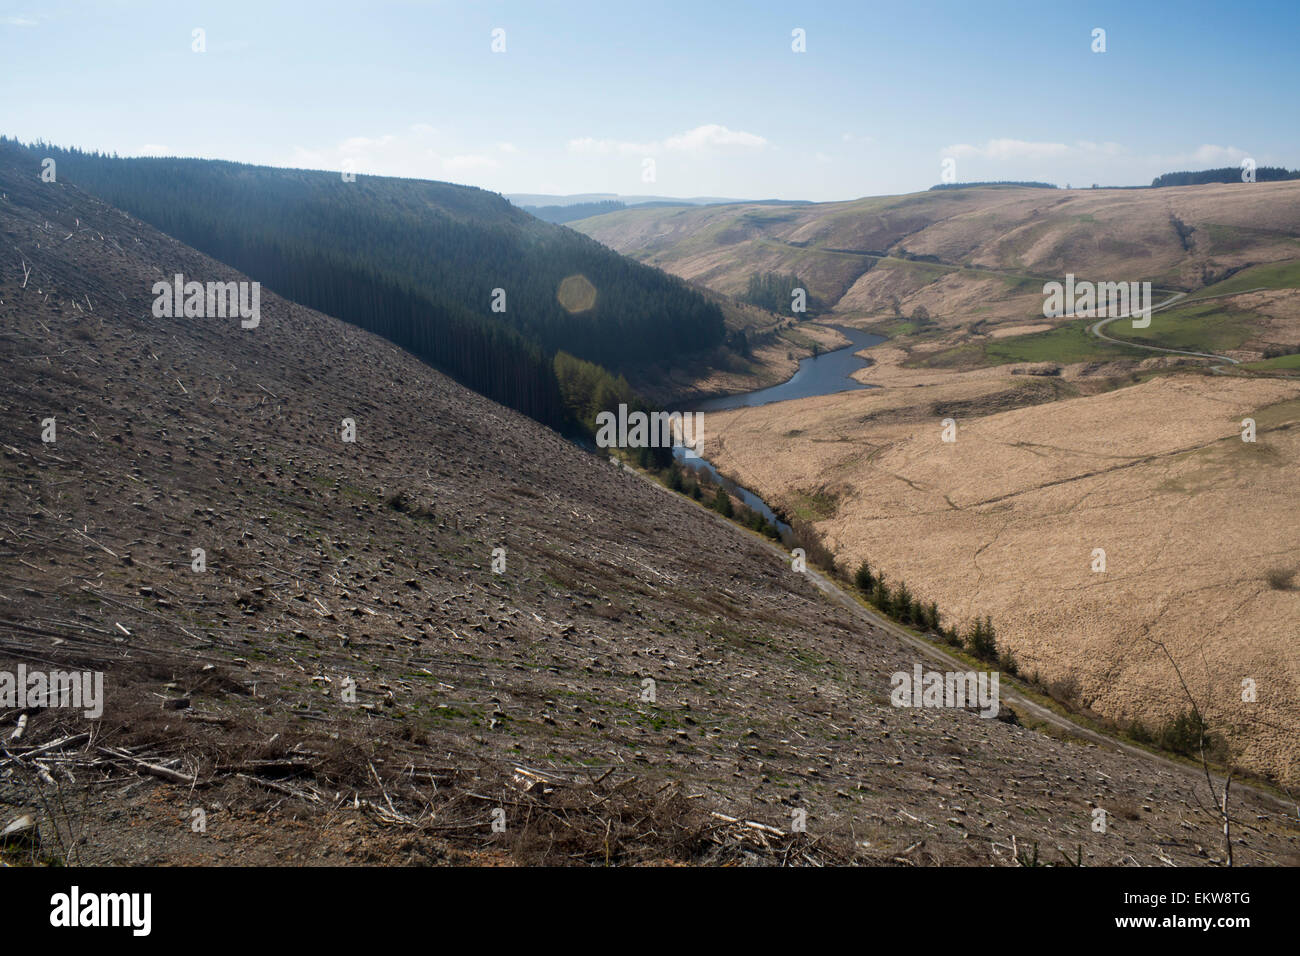 La déforestation dans la campagne près de Gallois Llyn Brianne Ceredigion Mid Wales UK Photo Stock